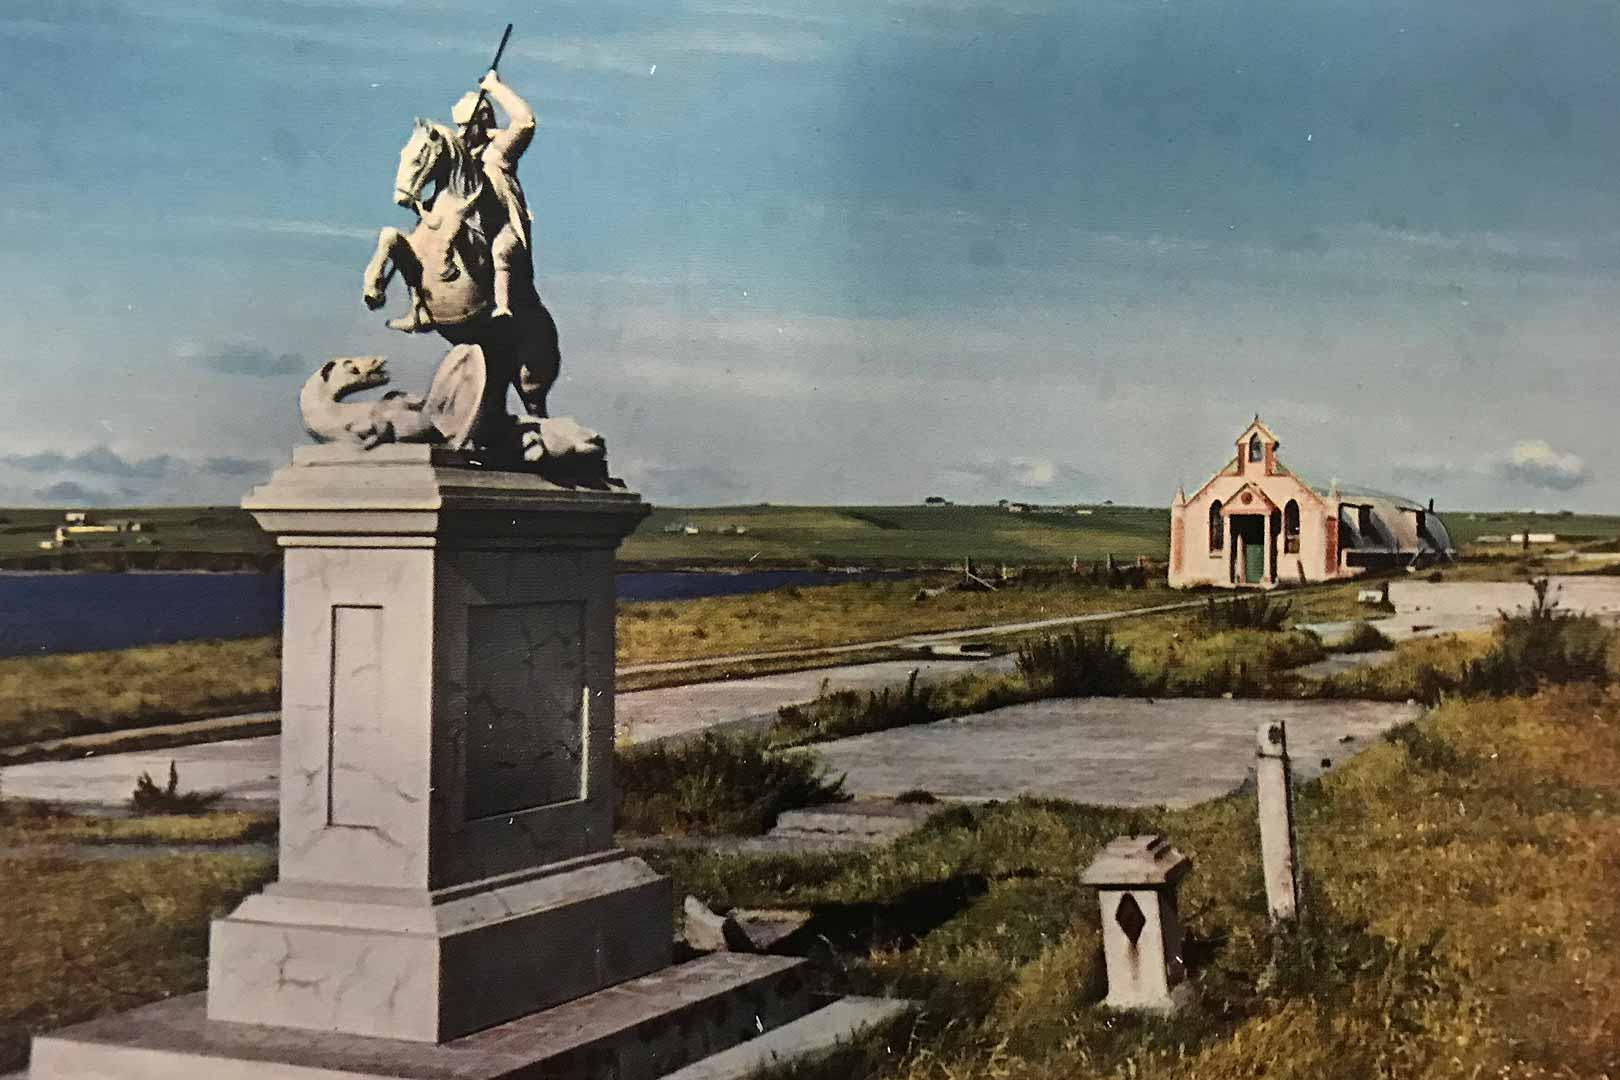 Postcard of the Italian Chapel and statue of St. George on horseback.